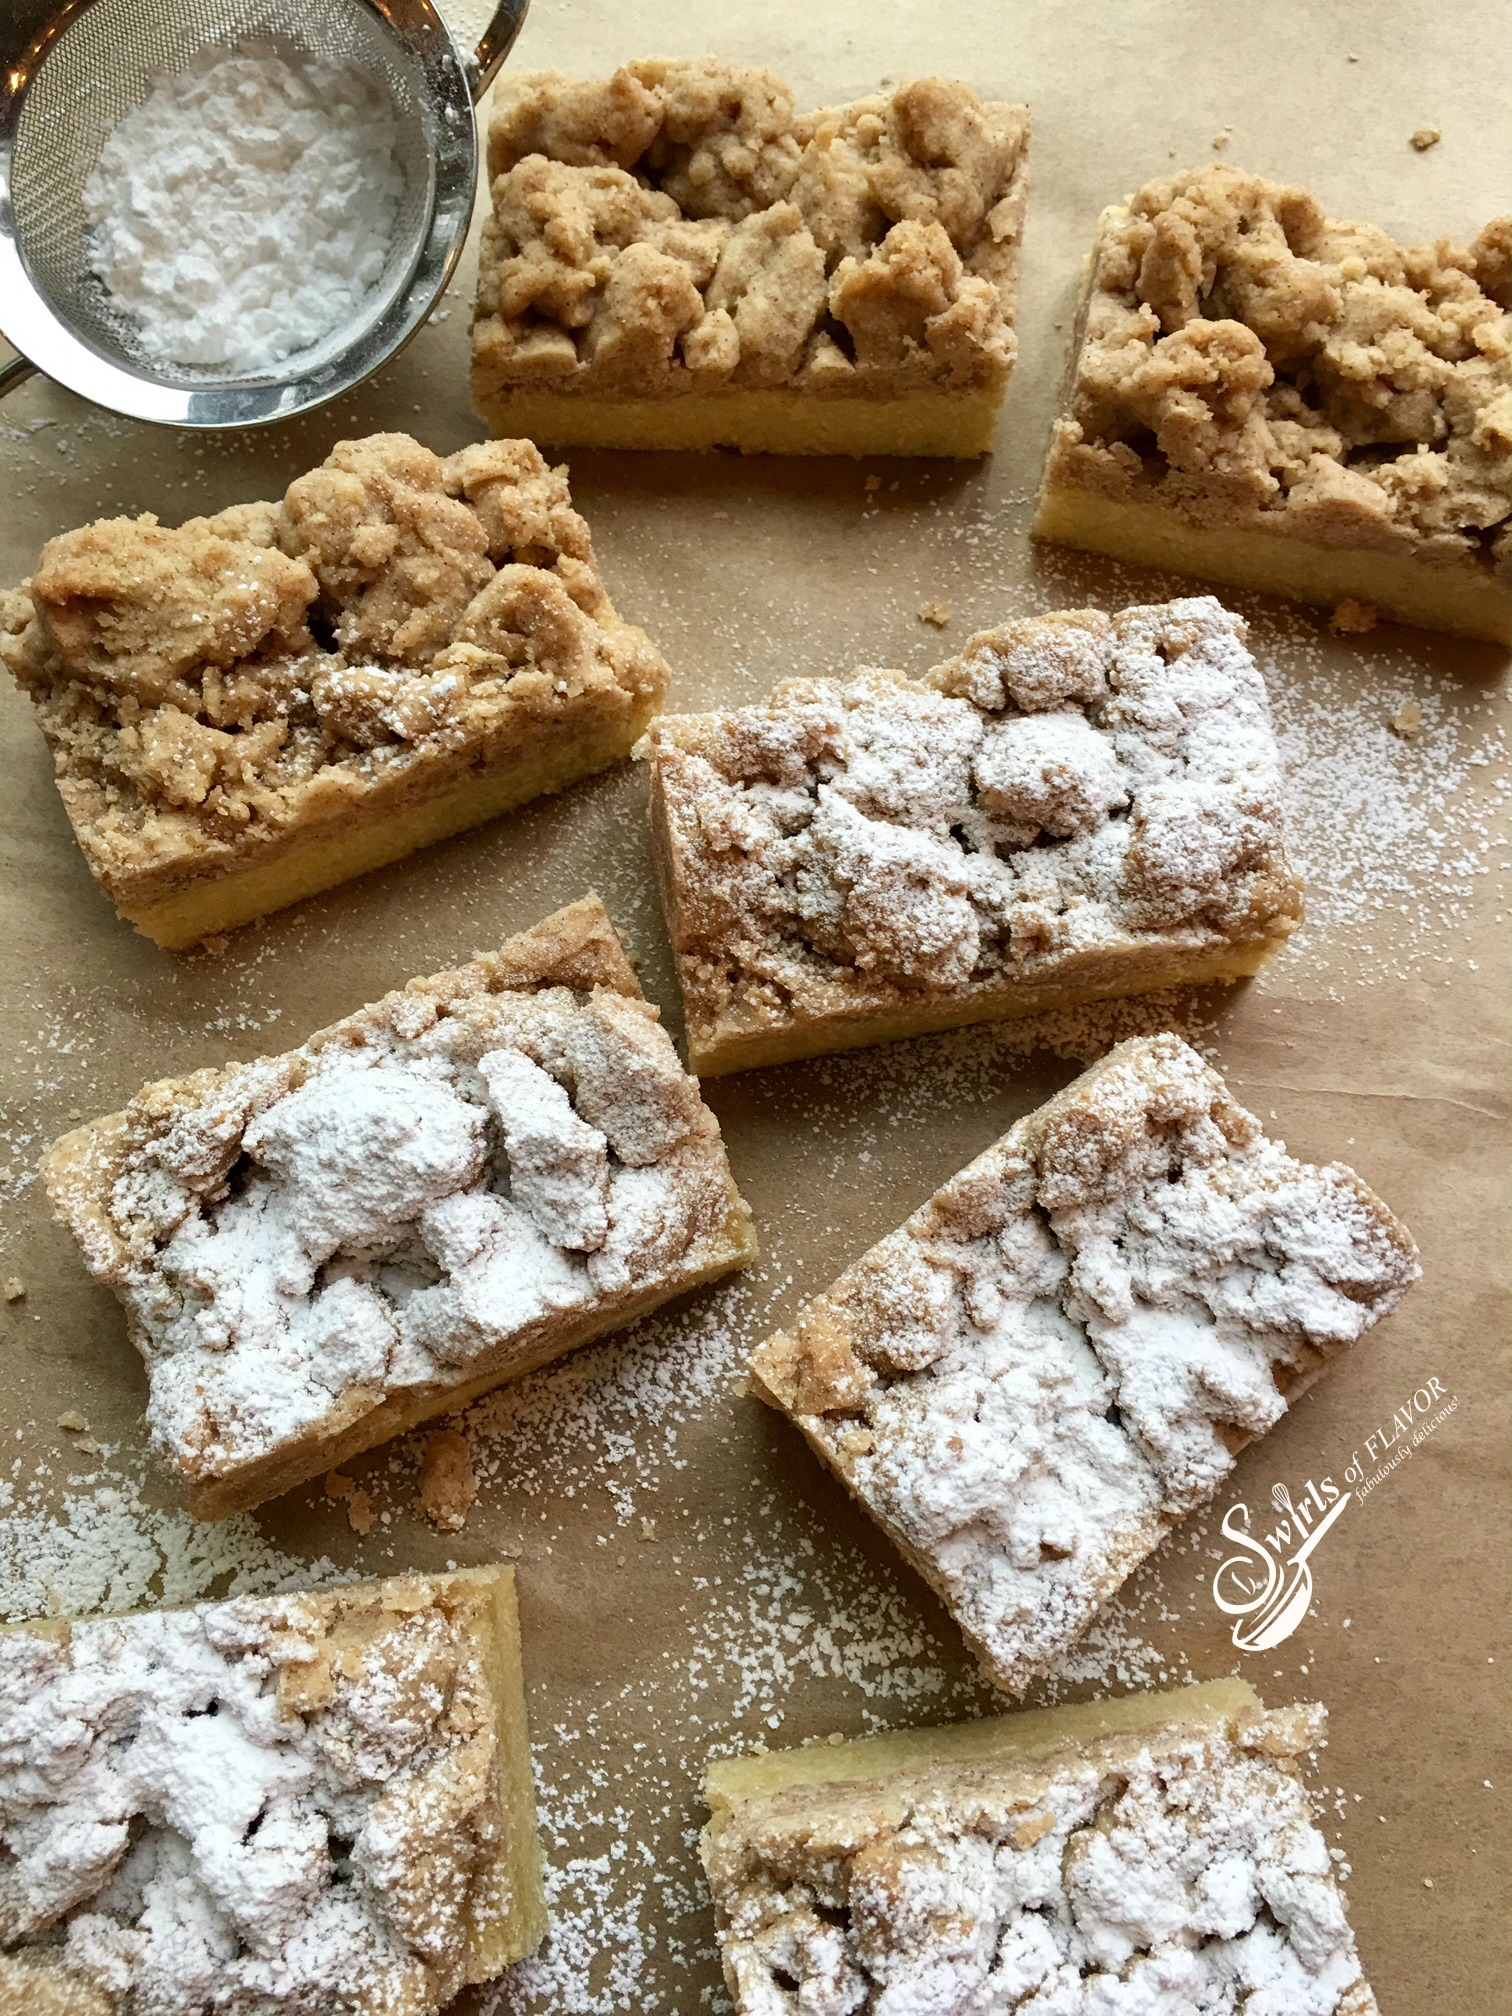 Crumb cake pieces with confectioners' sugar in sifter